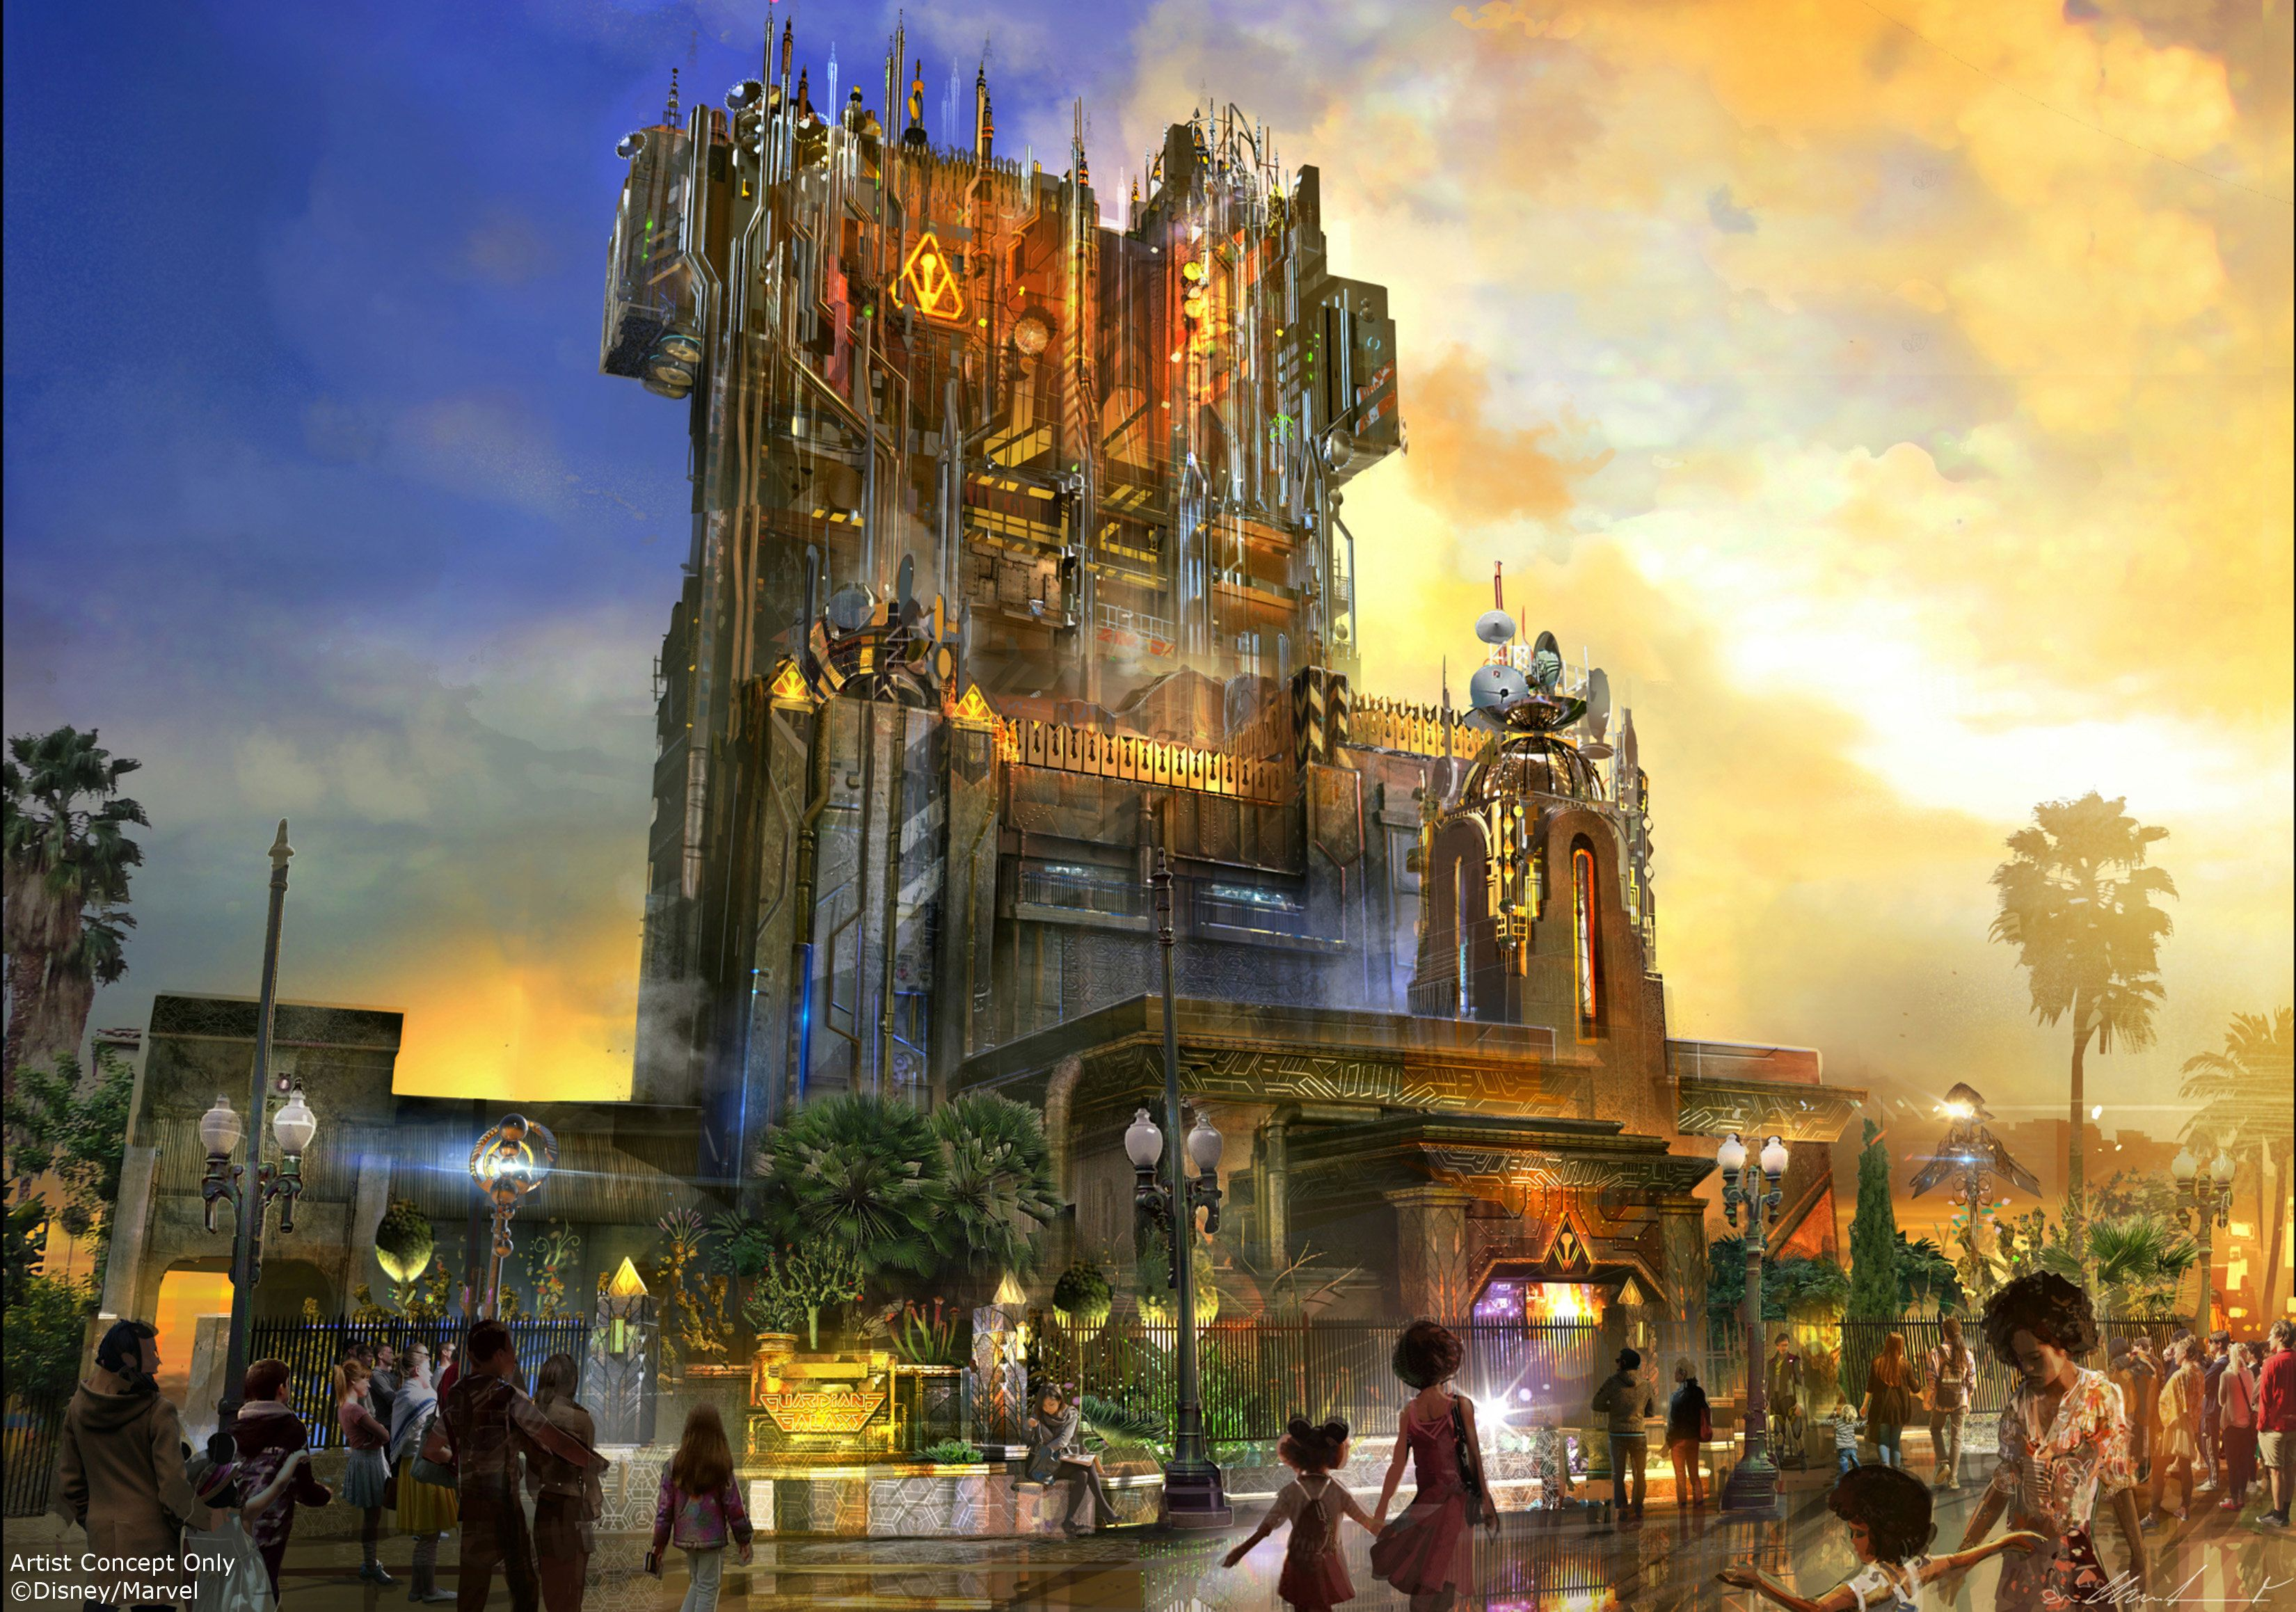 "<a href=""https://disneyparks.disney.go.com/blog/2016/07/guardians-of-the-galaxy-mission-breakout-coming-to-disney-california-adventure-park-summer-2017/"" target=""_blank"">Guardians of the Galaxy -- Mission Breakout</a> is a new ride in the building formerly known as Tower of Tower."